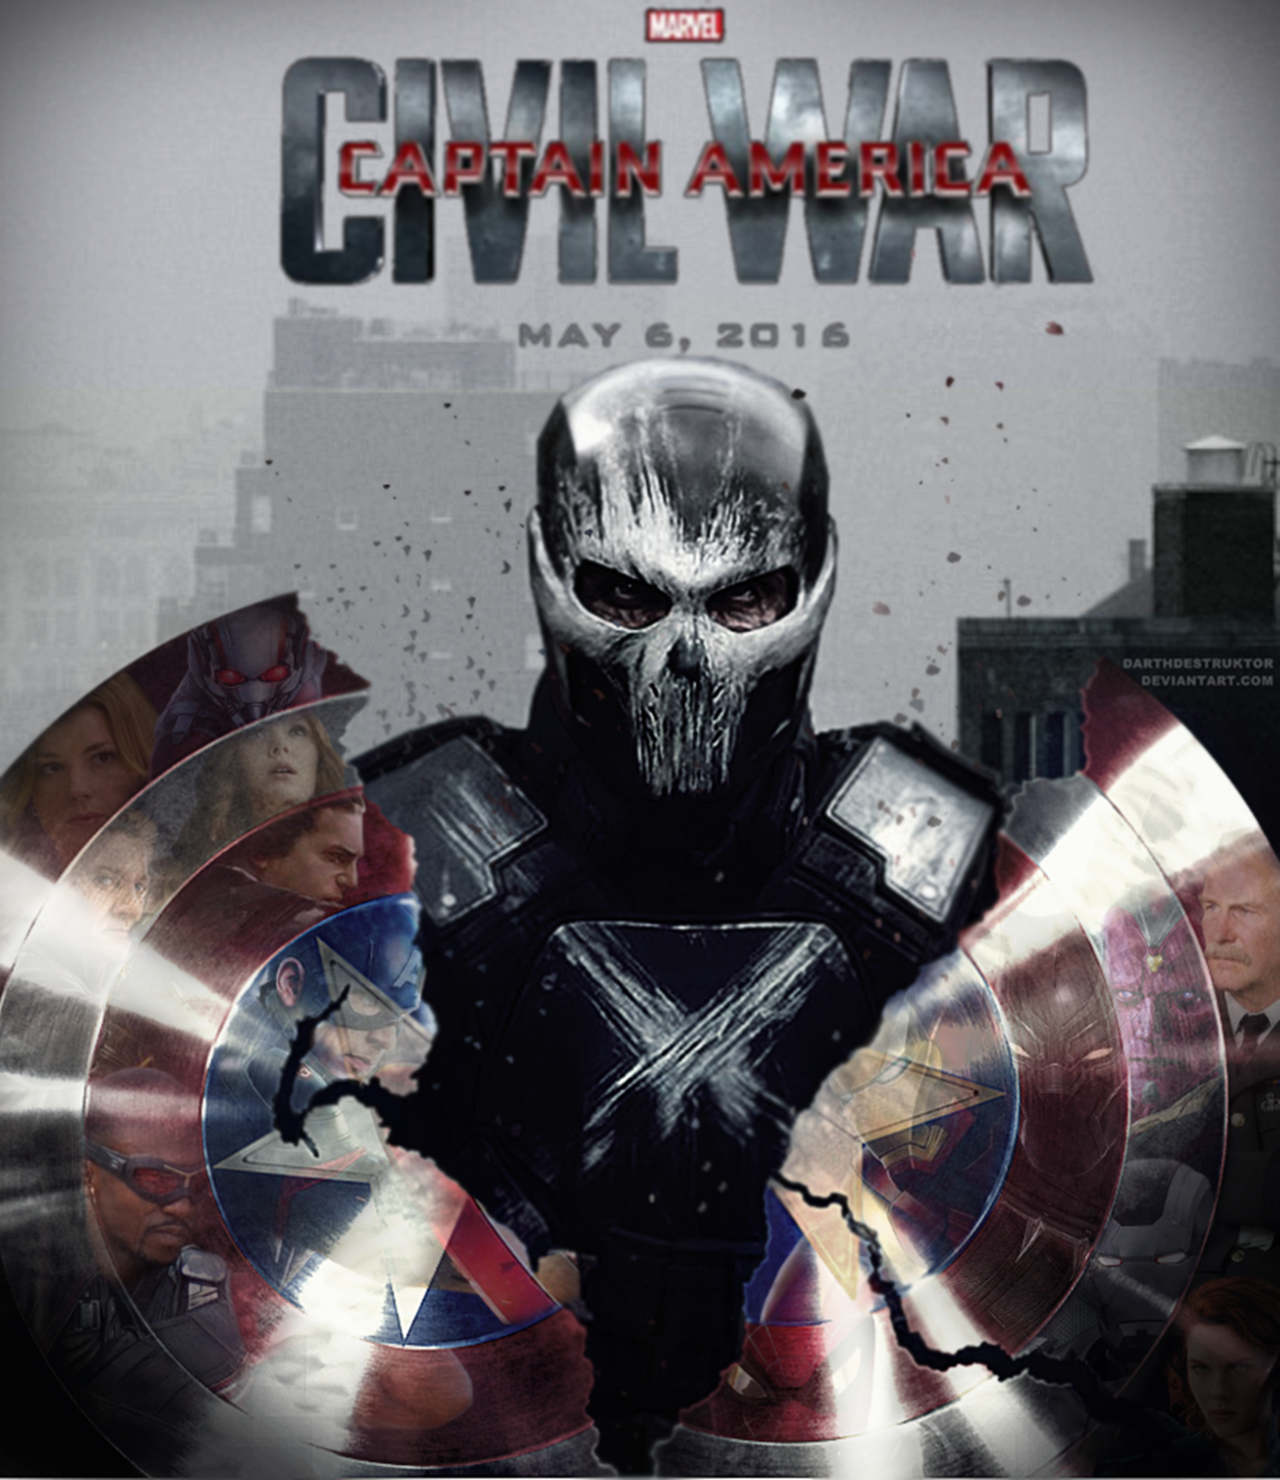 captaine_america_civilwar_movie_poster-3